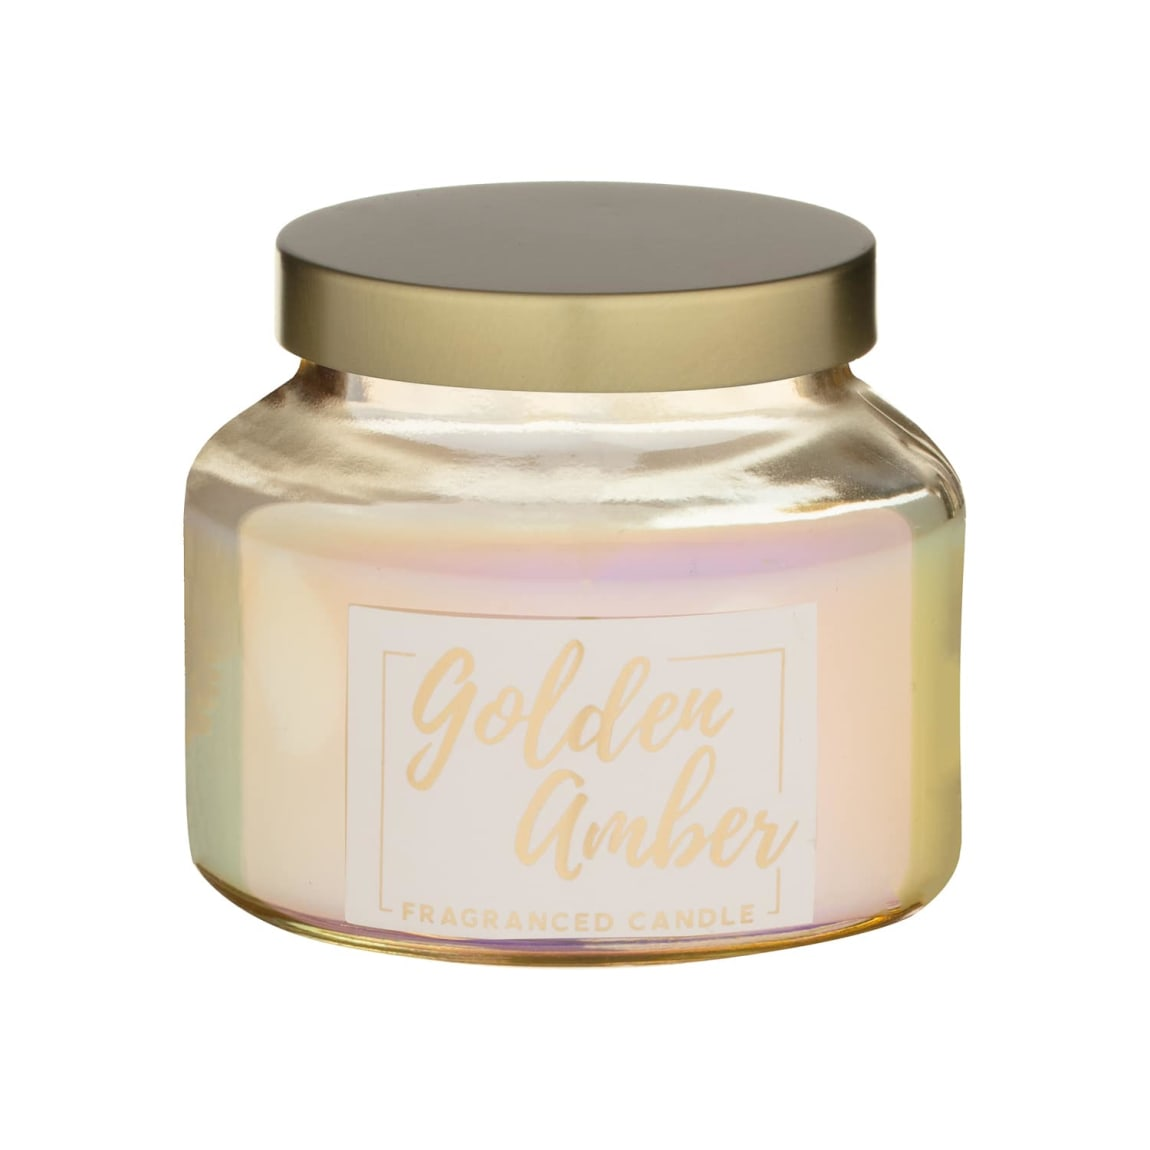 Pearlised Small Fragranced Candle - Golden Amber